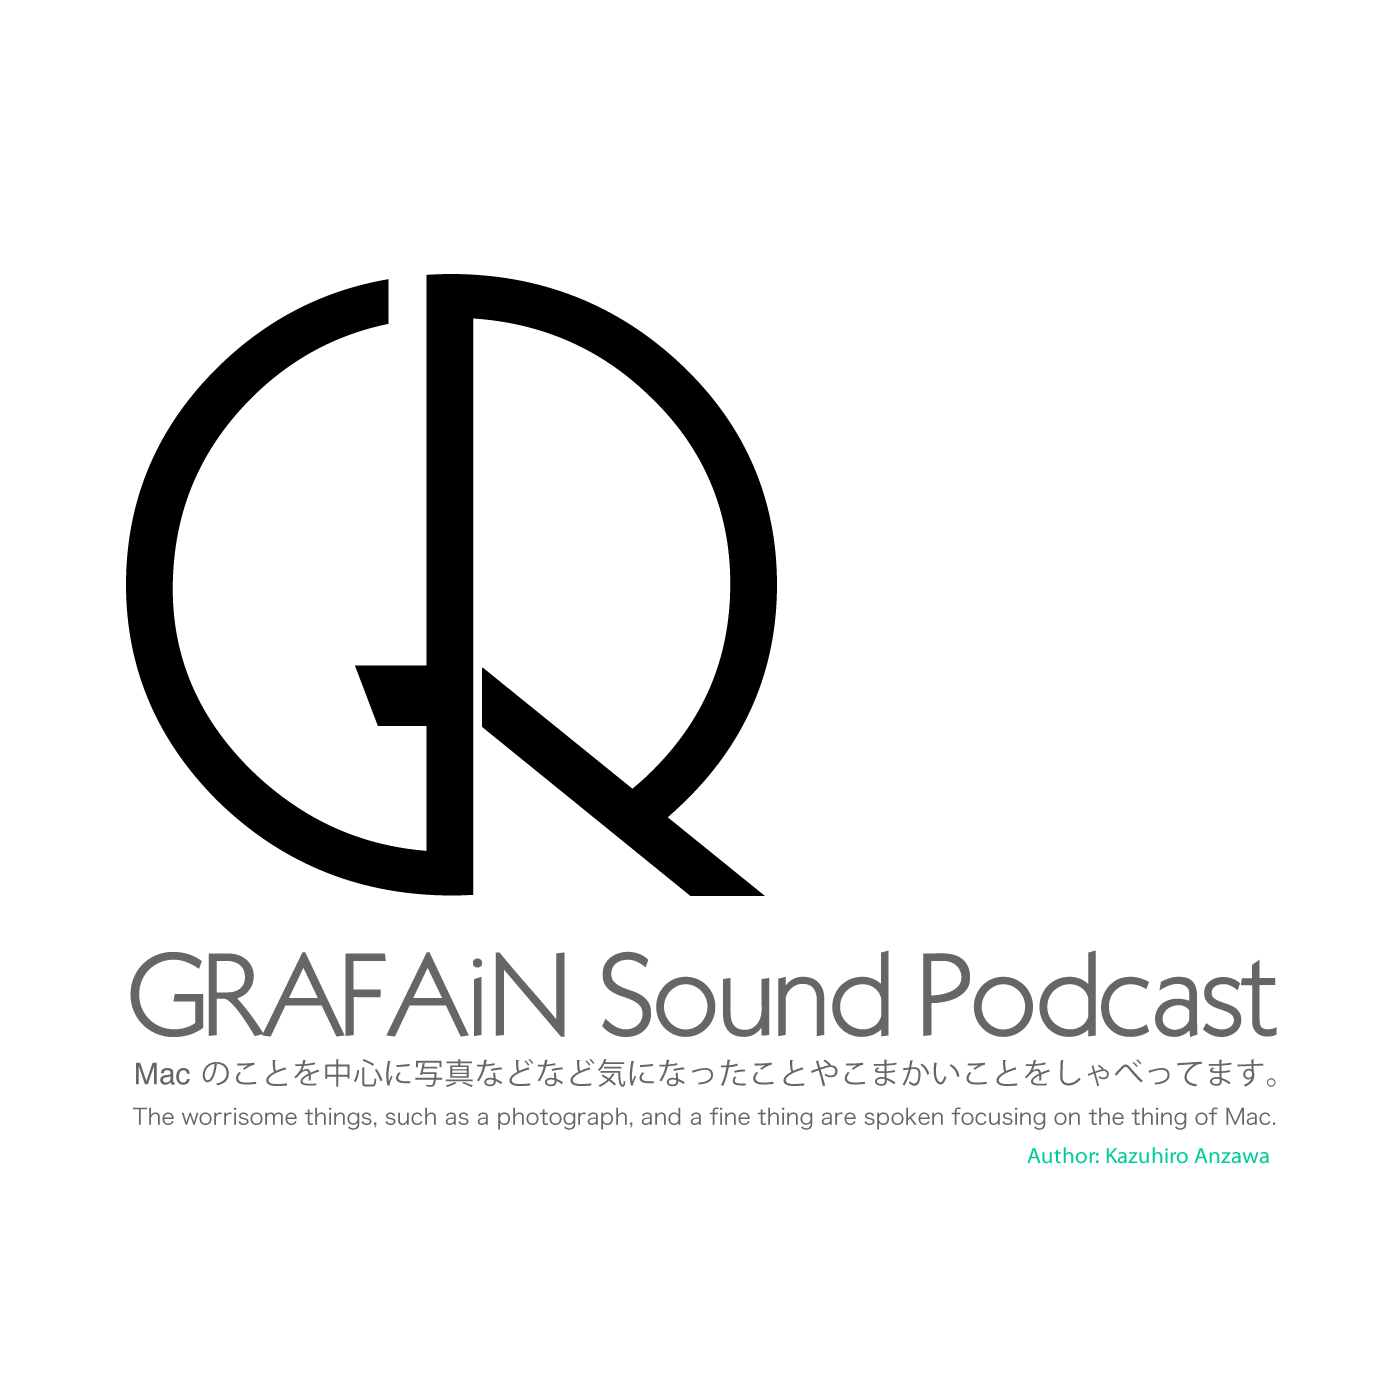 GRAFAiN Sound Podcast